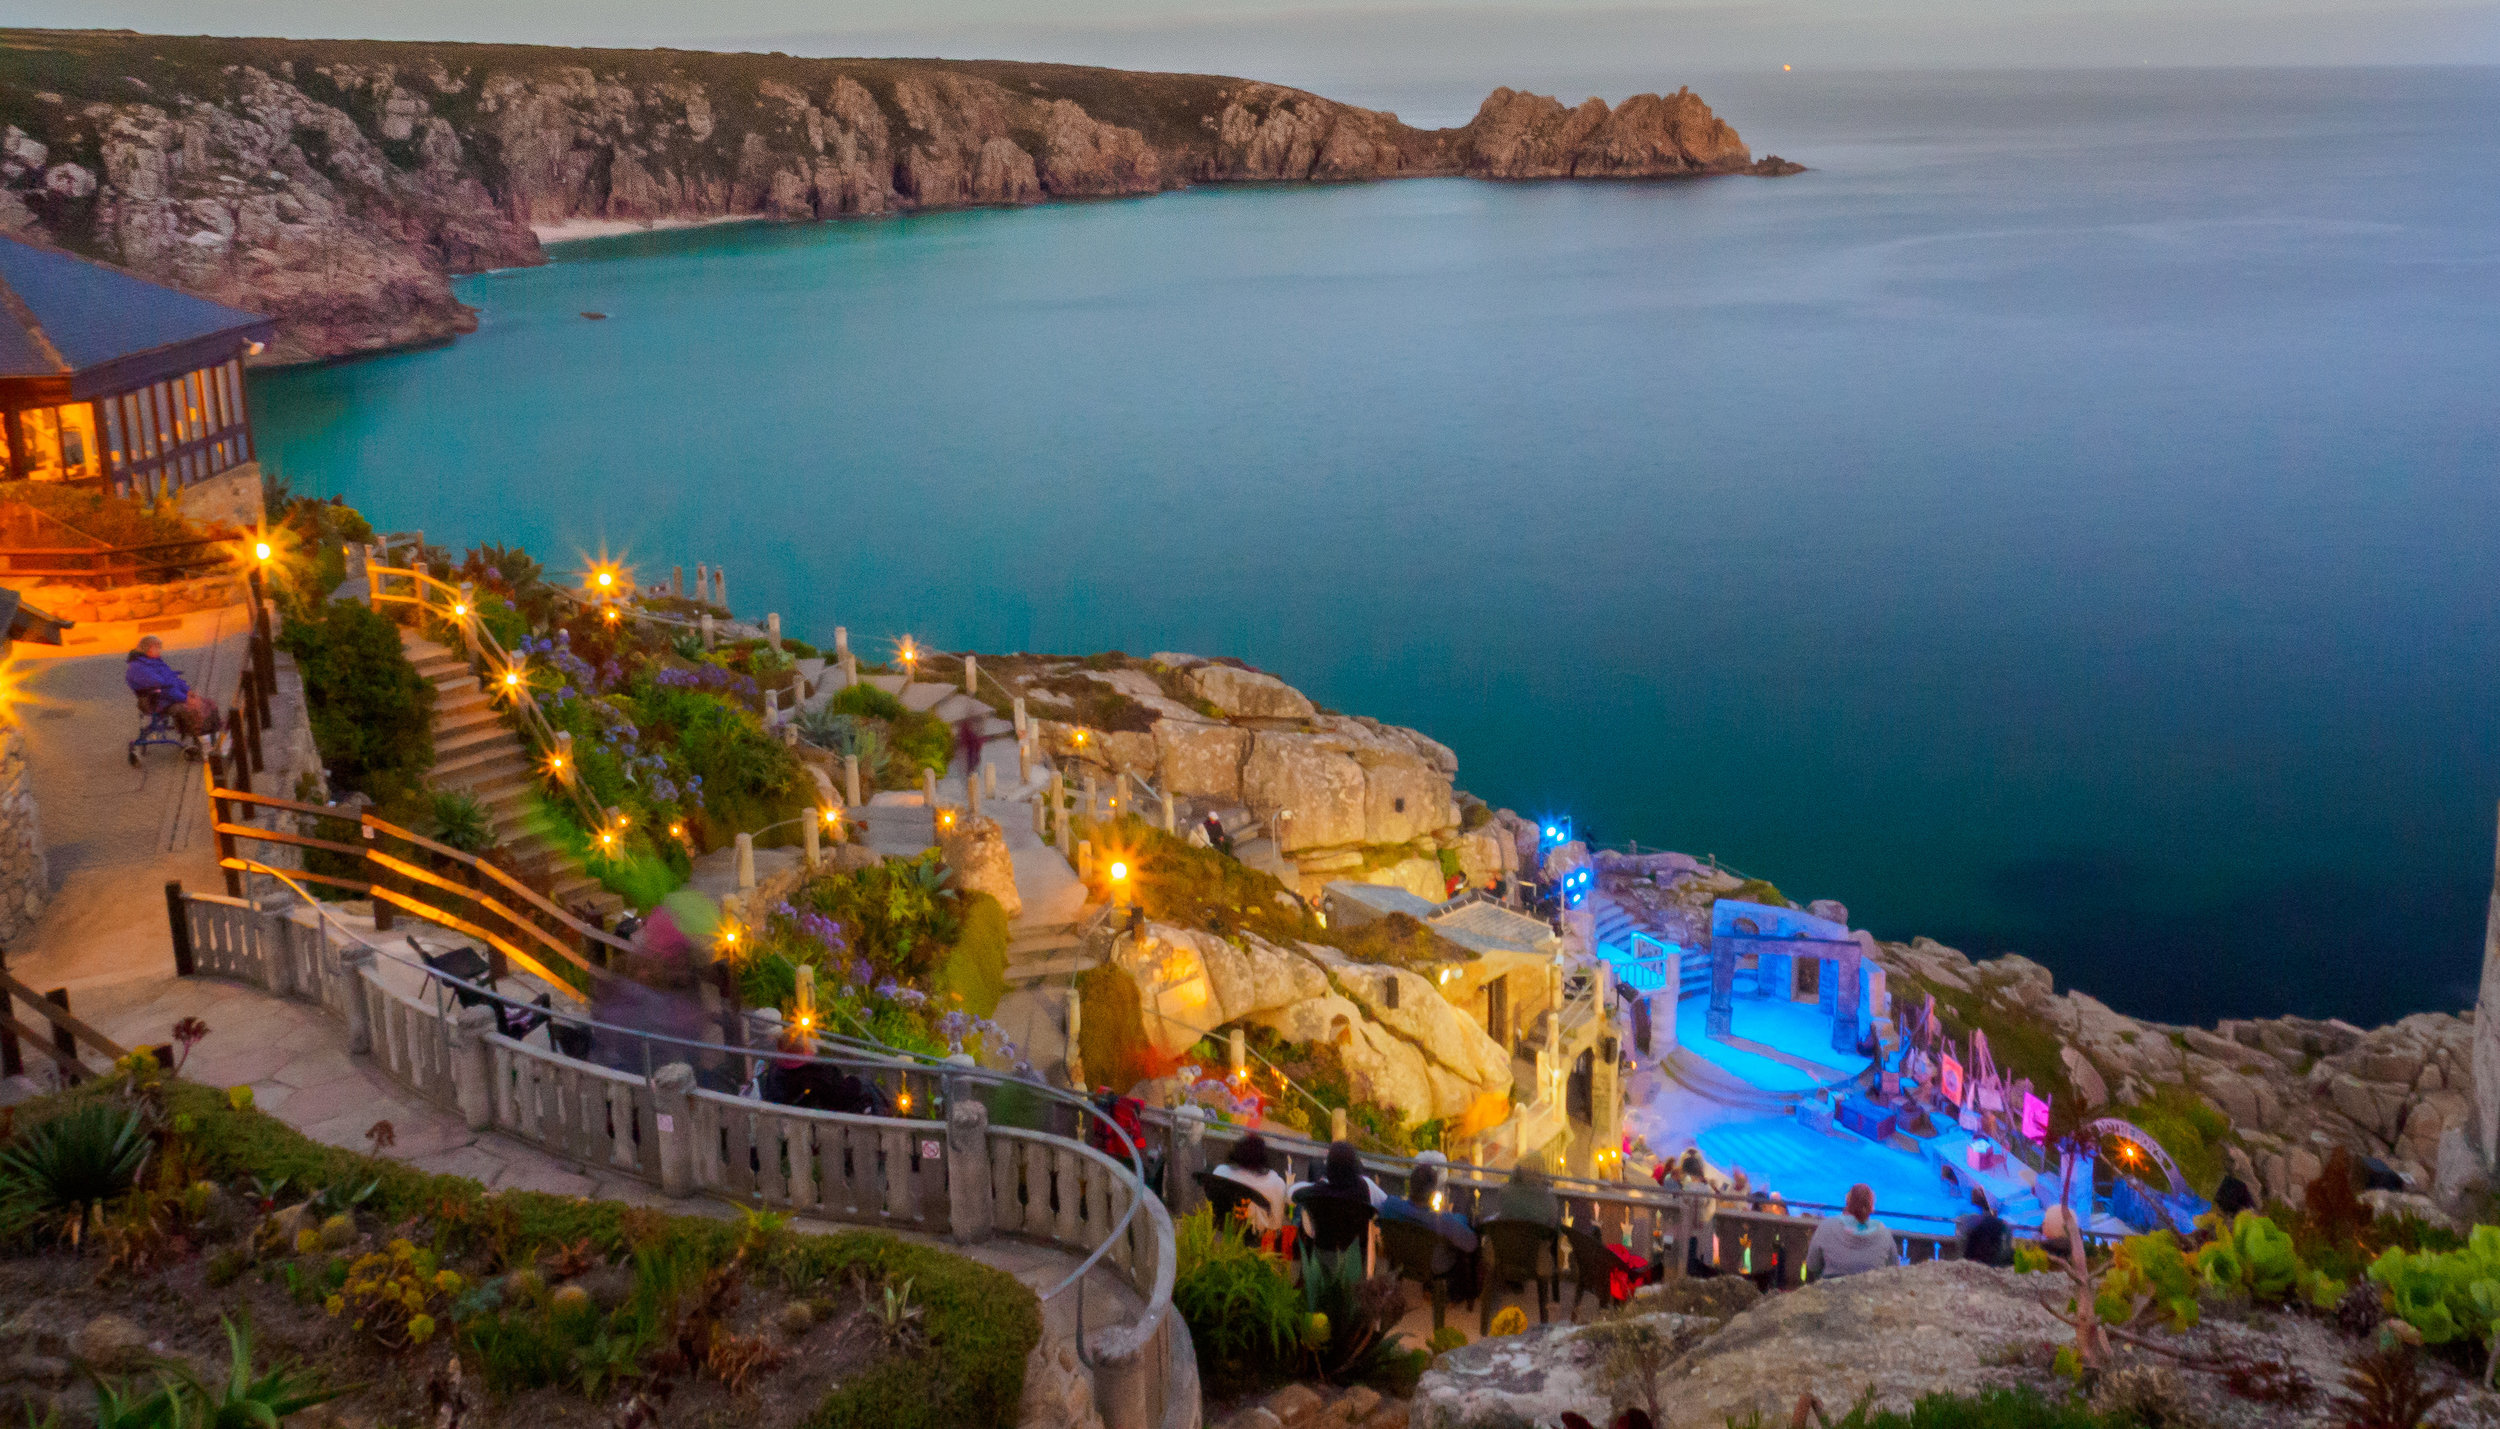 The Minack Theatre. f22, ISO 1600, 4, 24mm